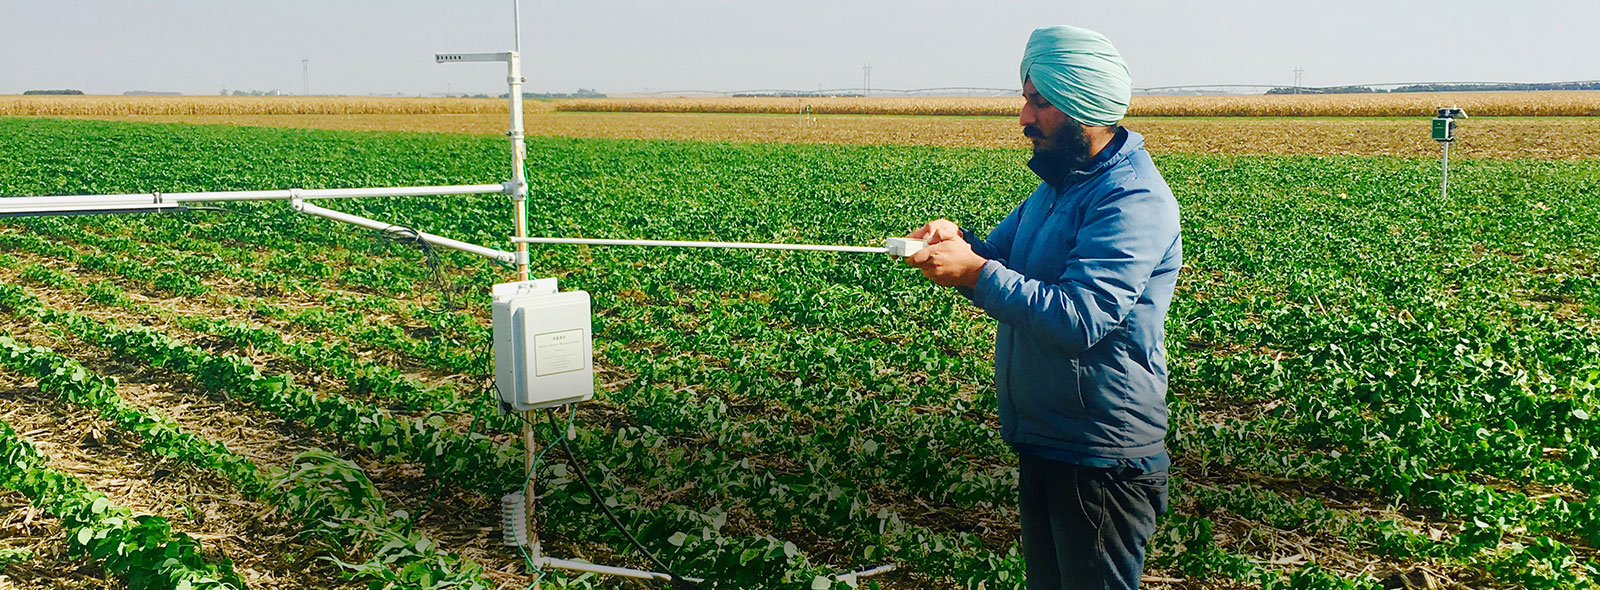 Meetpal Kukal standing in a farm field working with a device.